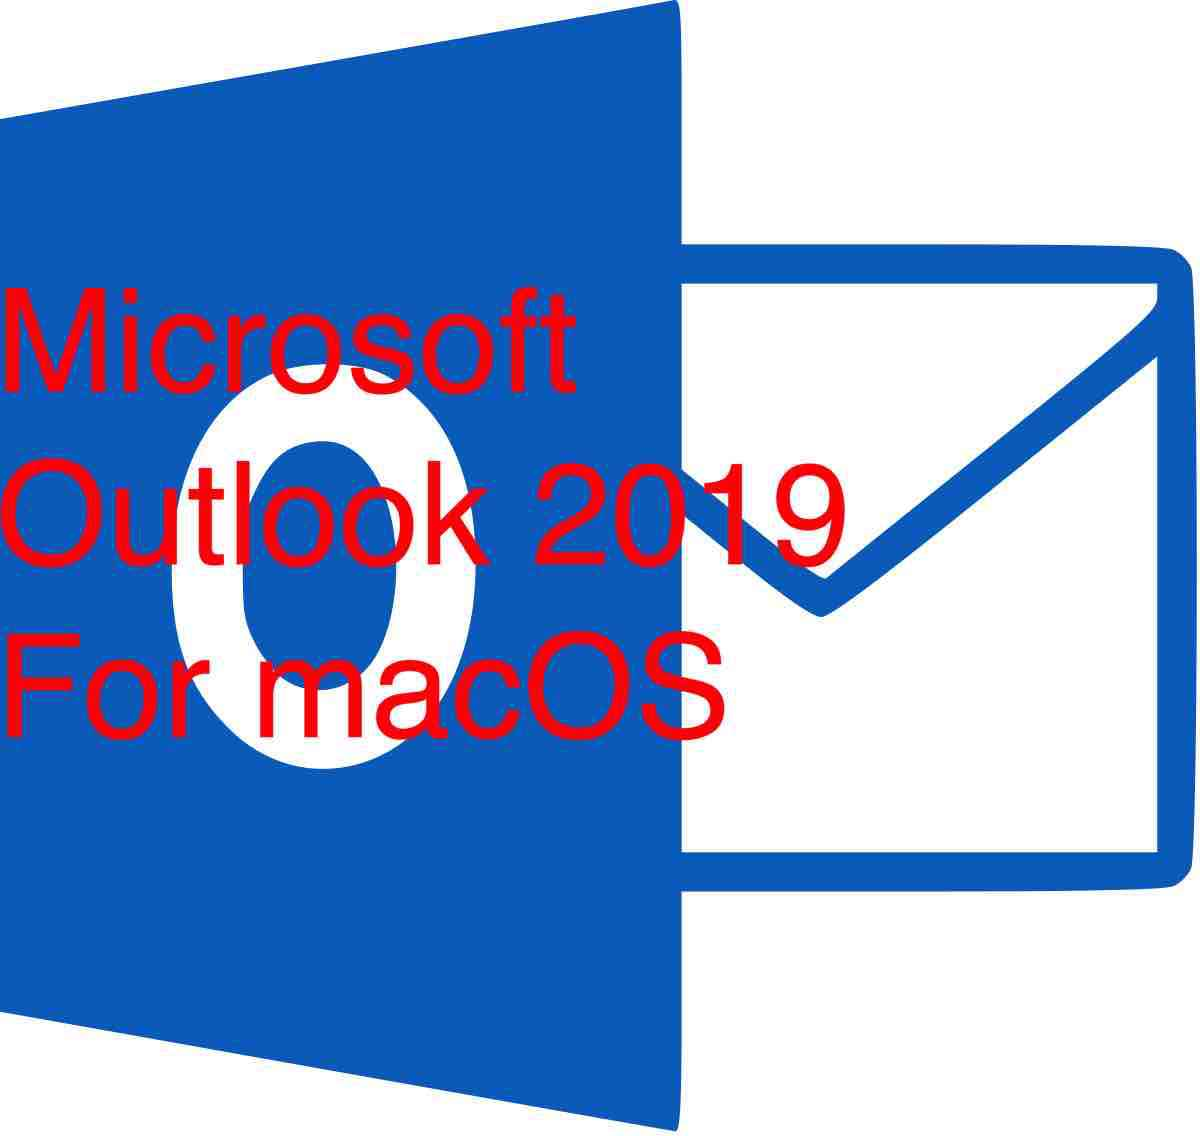 Microsoft Outlook 2019 VL v16 26 Patched For MacOSX Download